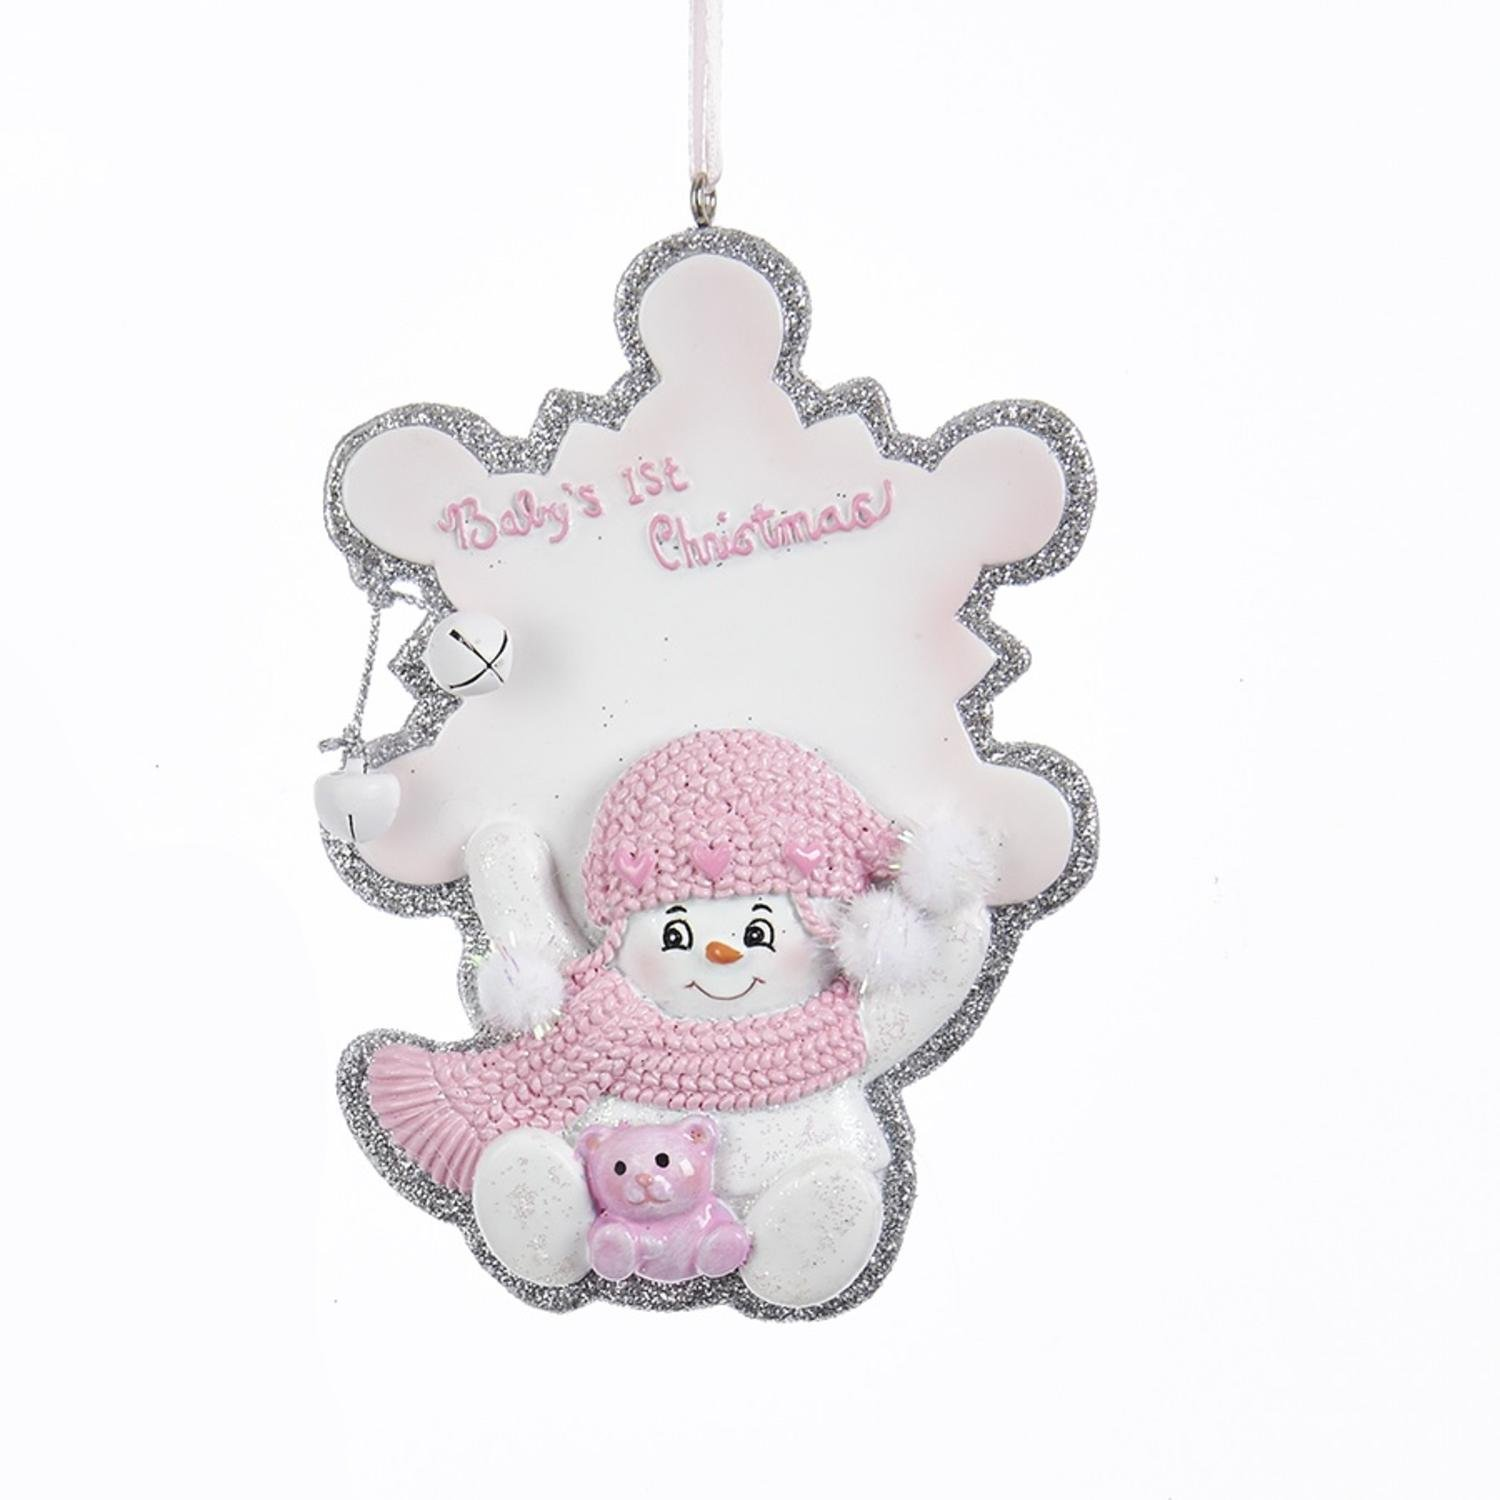 Pack of 12 ''Baby's 1st Christmas'' Snowgirl with Snowflake Christmas Ornaments for Personalization 4''